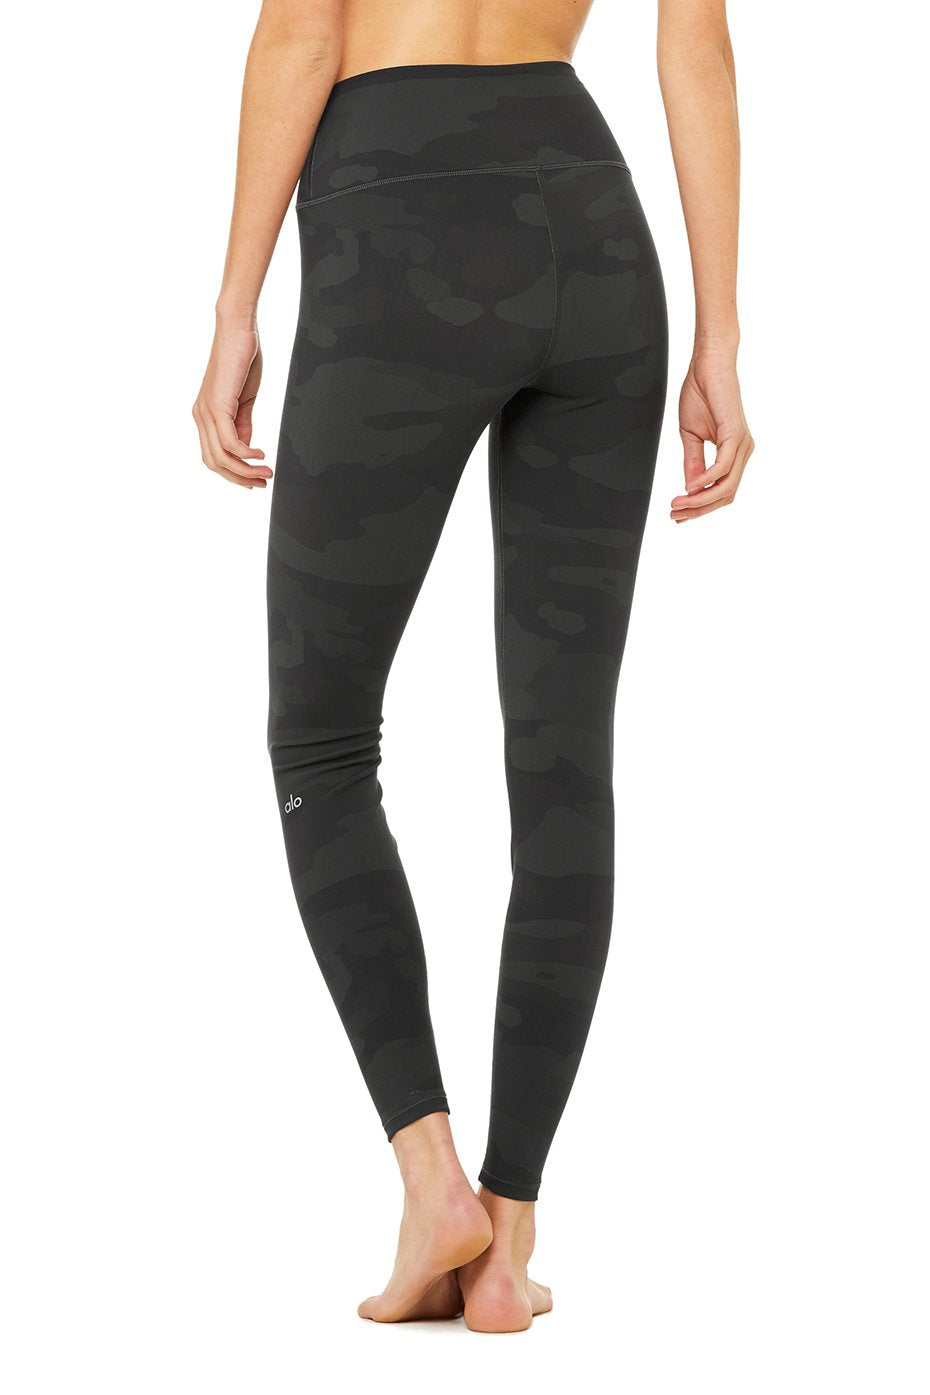 Alo Yoga High Waist Camo Viper Leggings ~ Black Camouflage